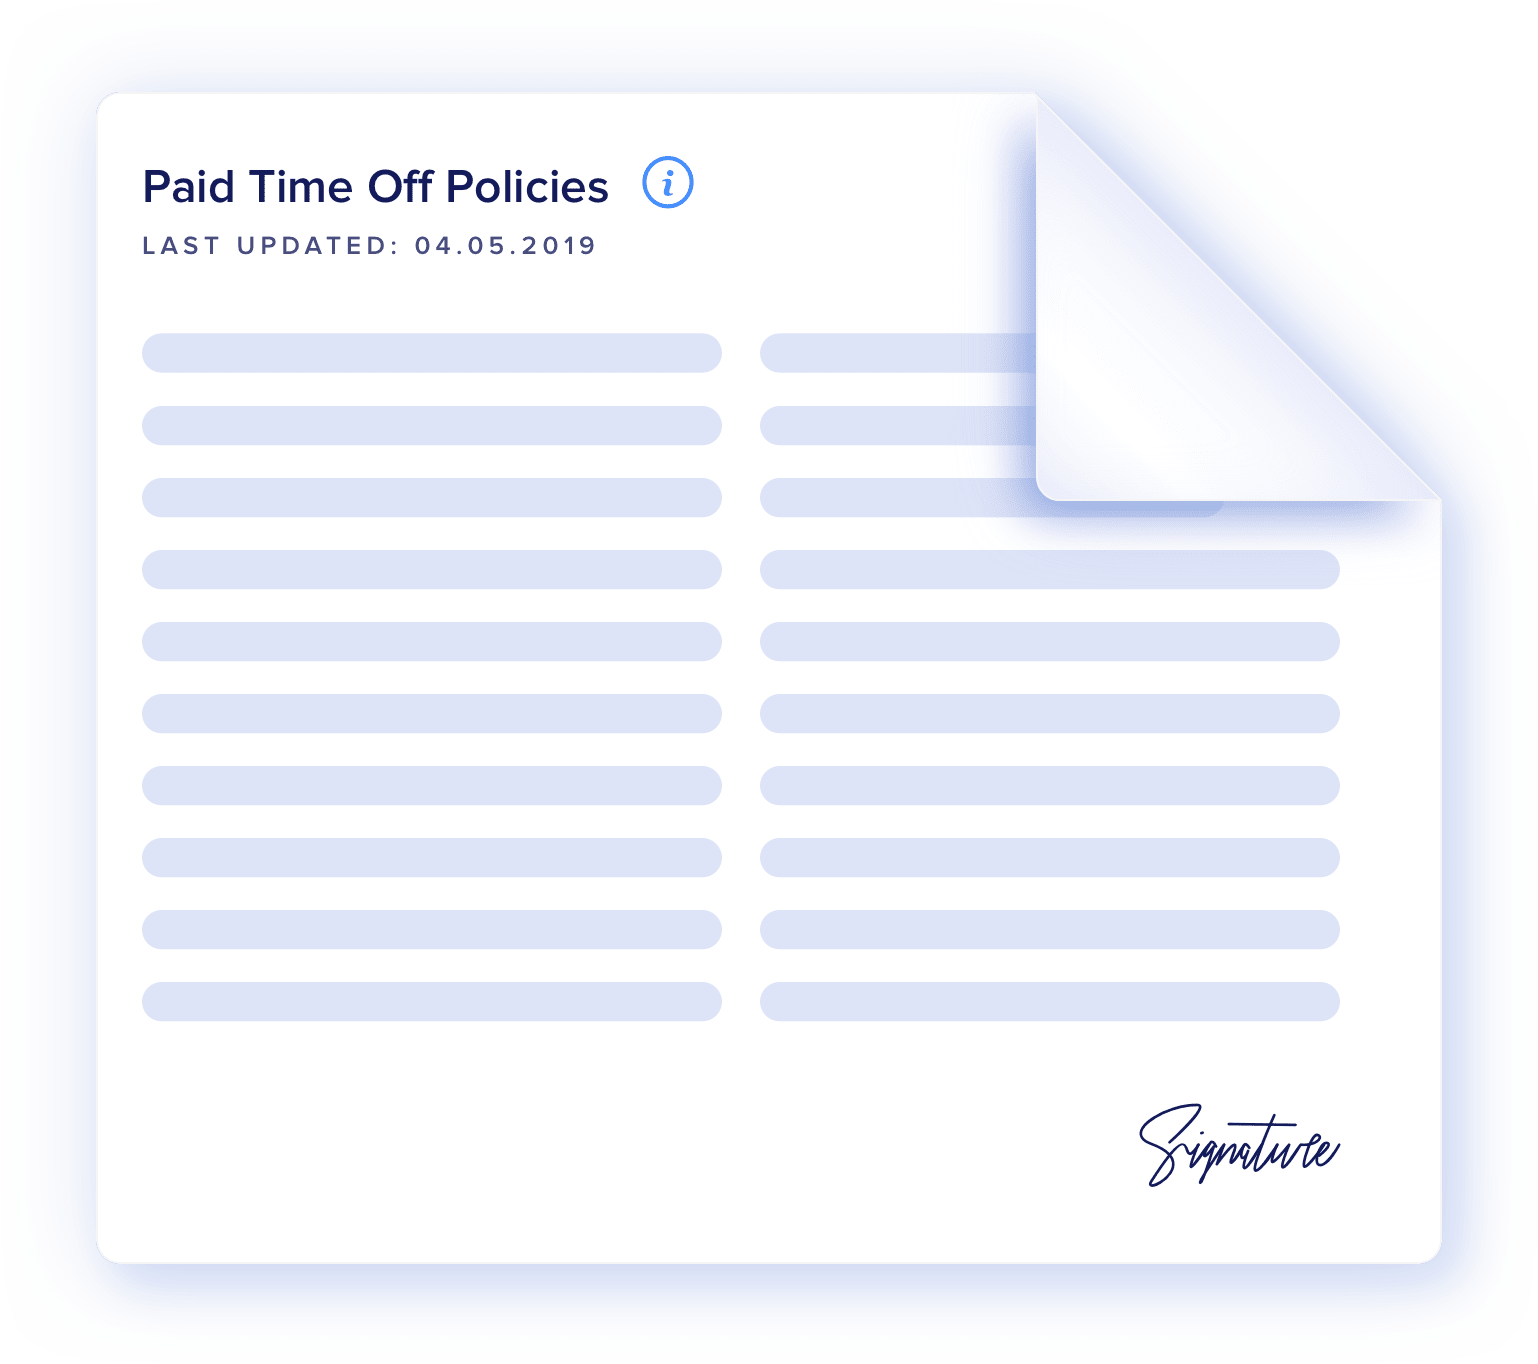 Unique PTO Policies For Your Team